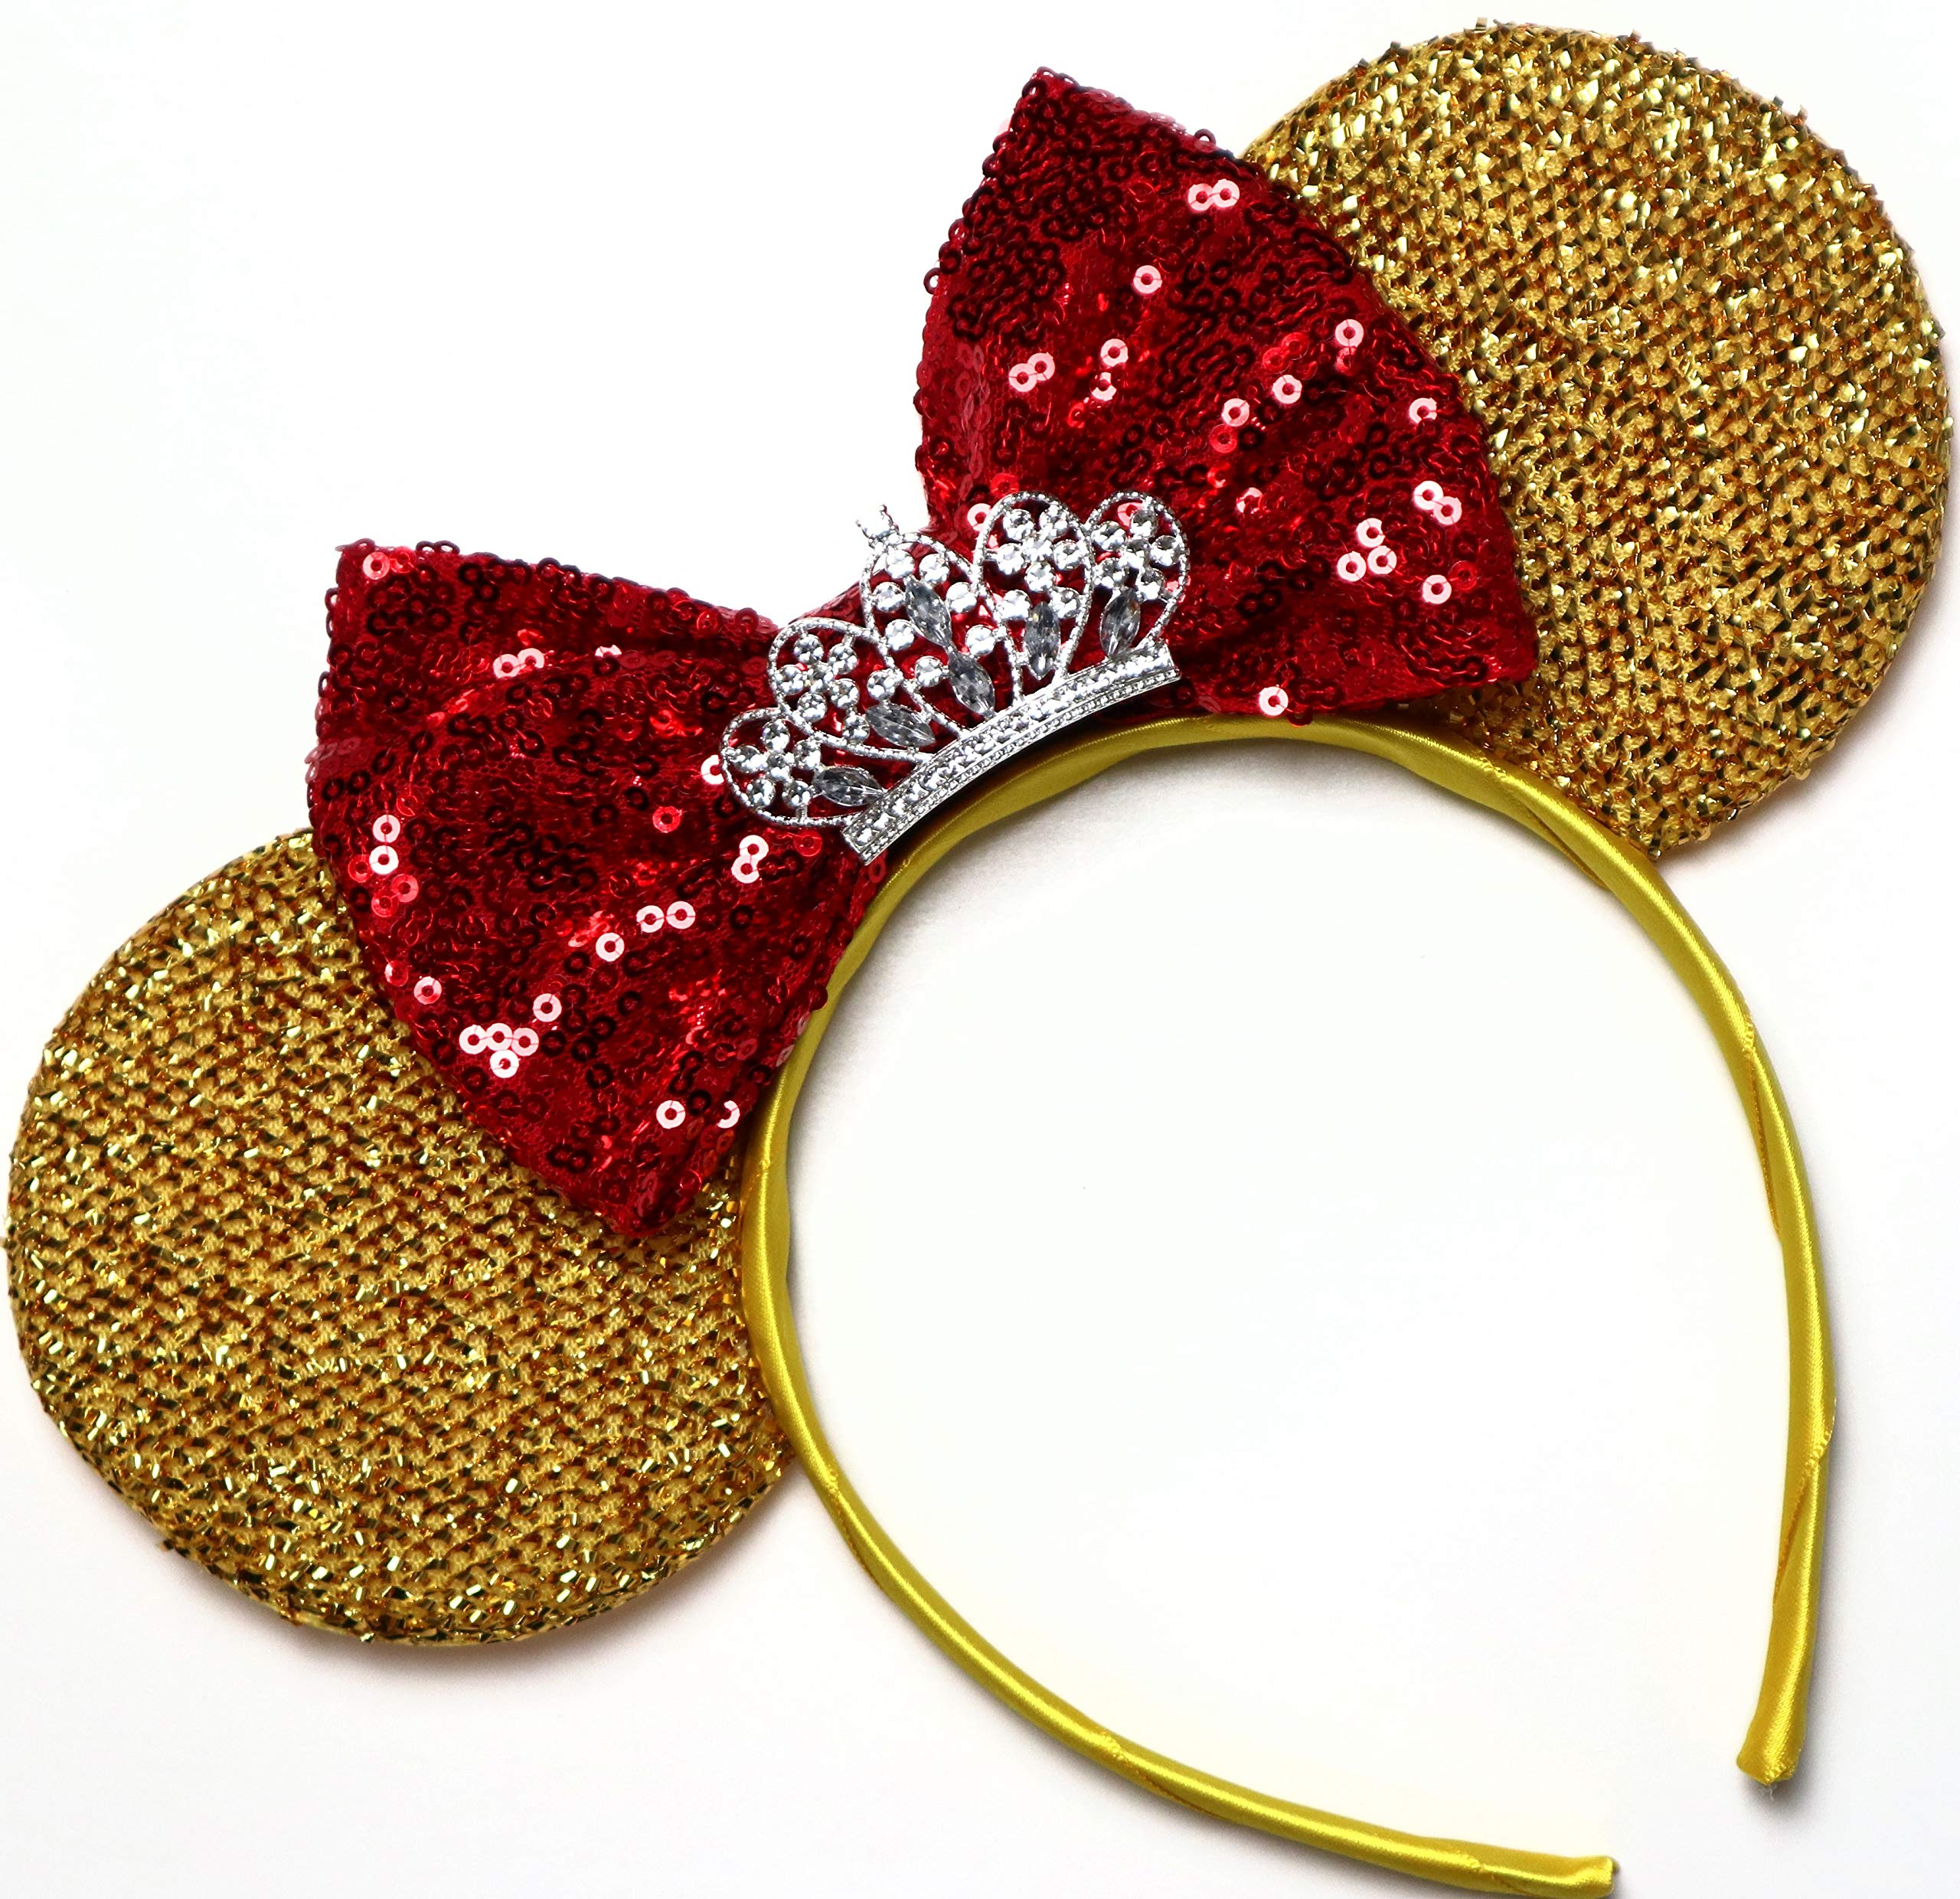 CLGIFT Beauty and The Beast Ears, Belle Ears, Minnie Ears, Disney Ears, Gold Minnie Ears